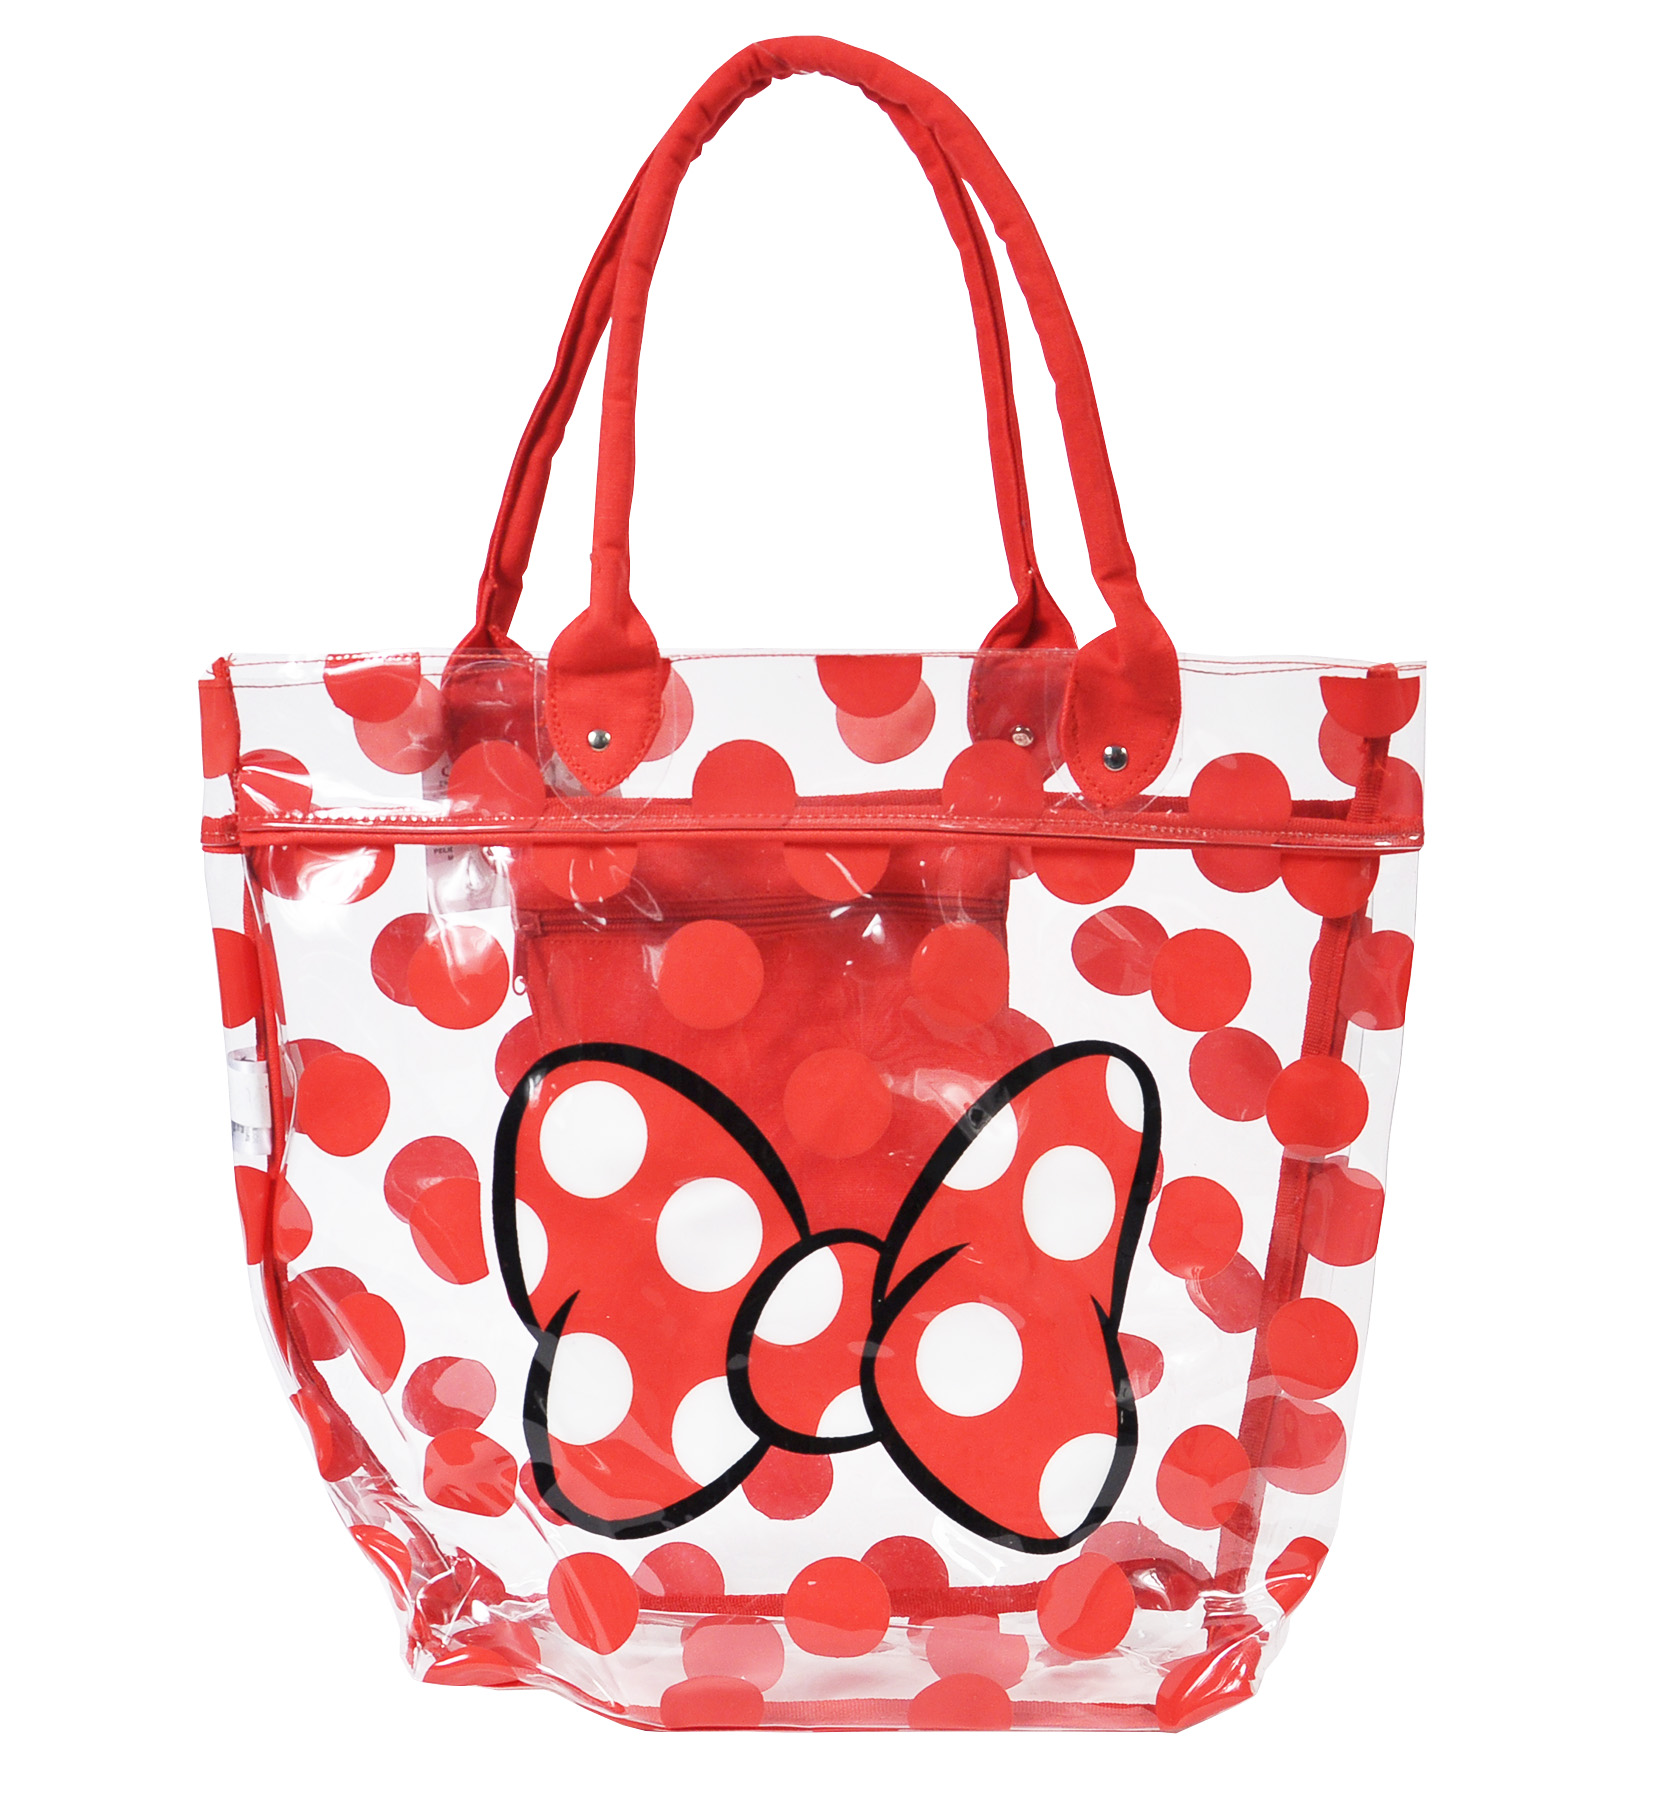 Disney Minnie Mouse Beach Bag Red Polka Dot Bow Tote Plastic Clear ...